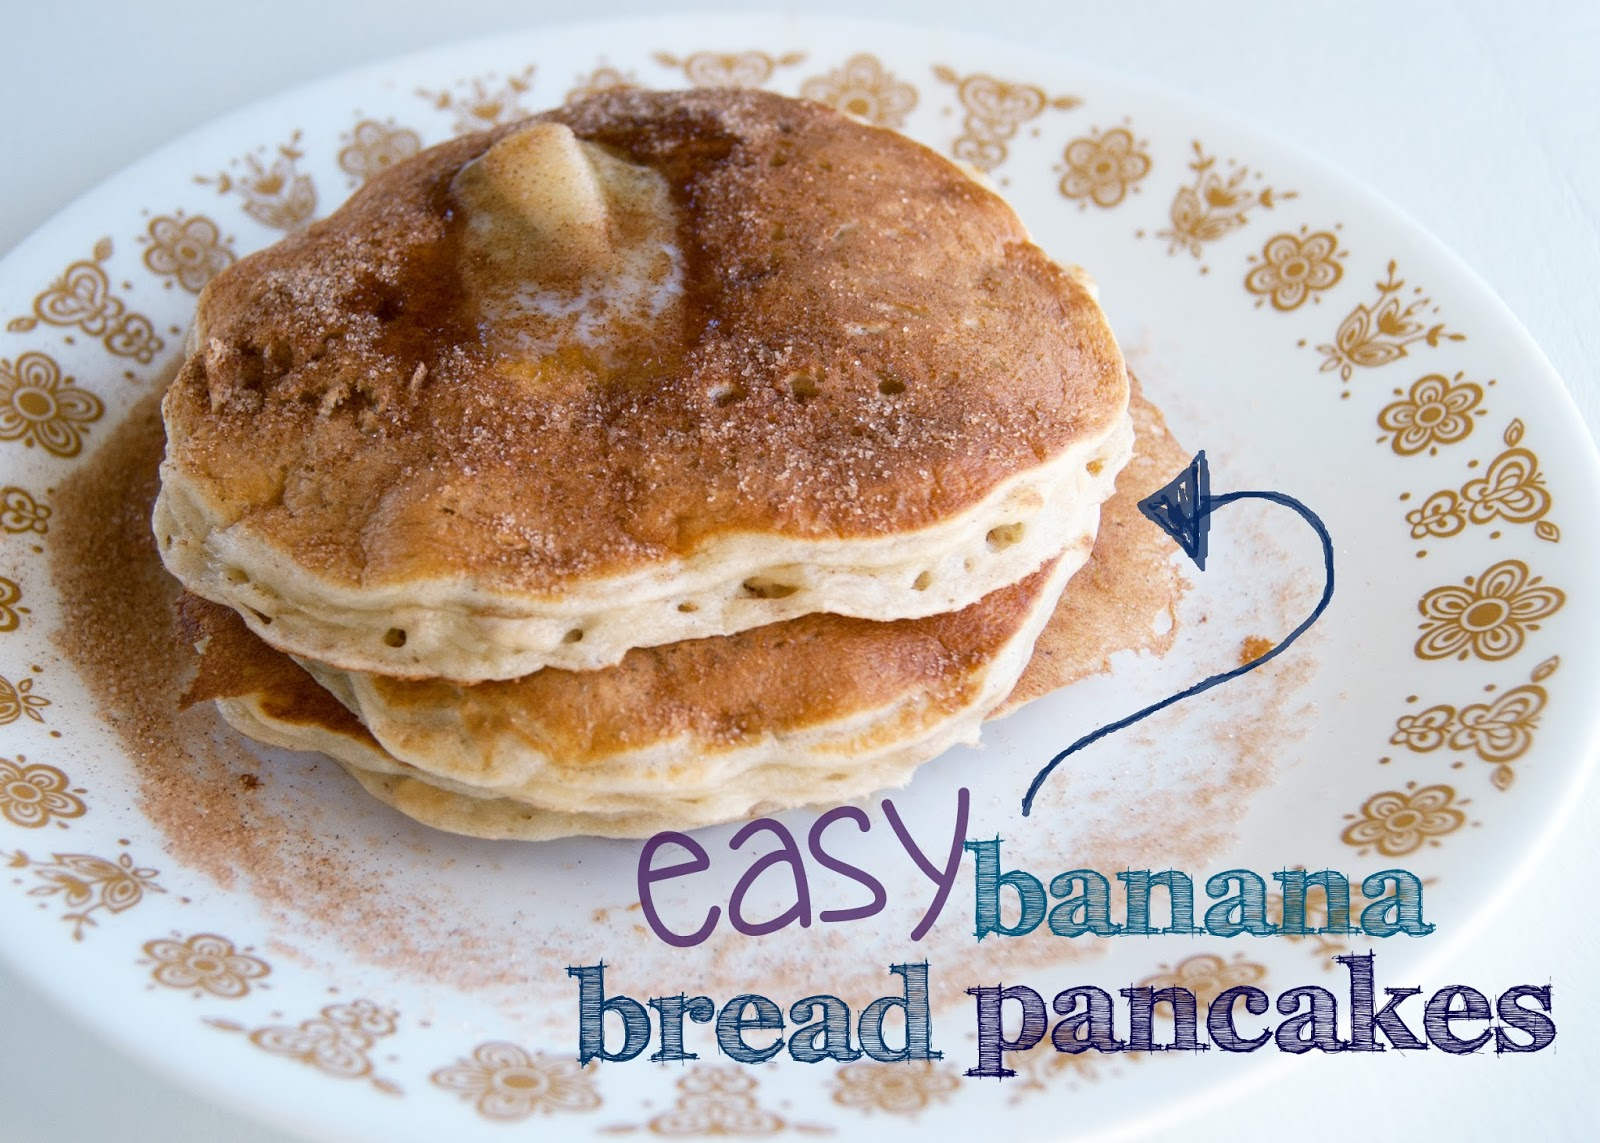 Easy Banana Bread pancakes from scratch